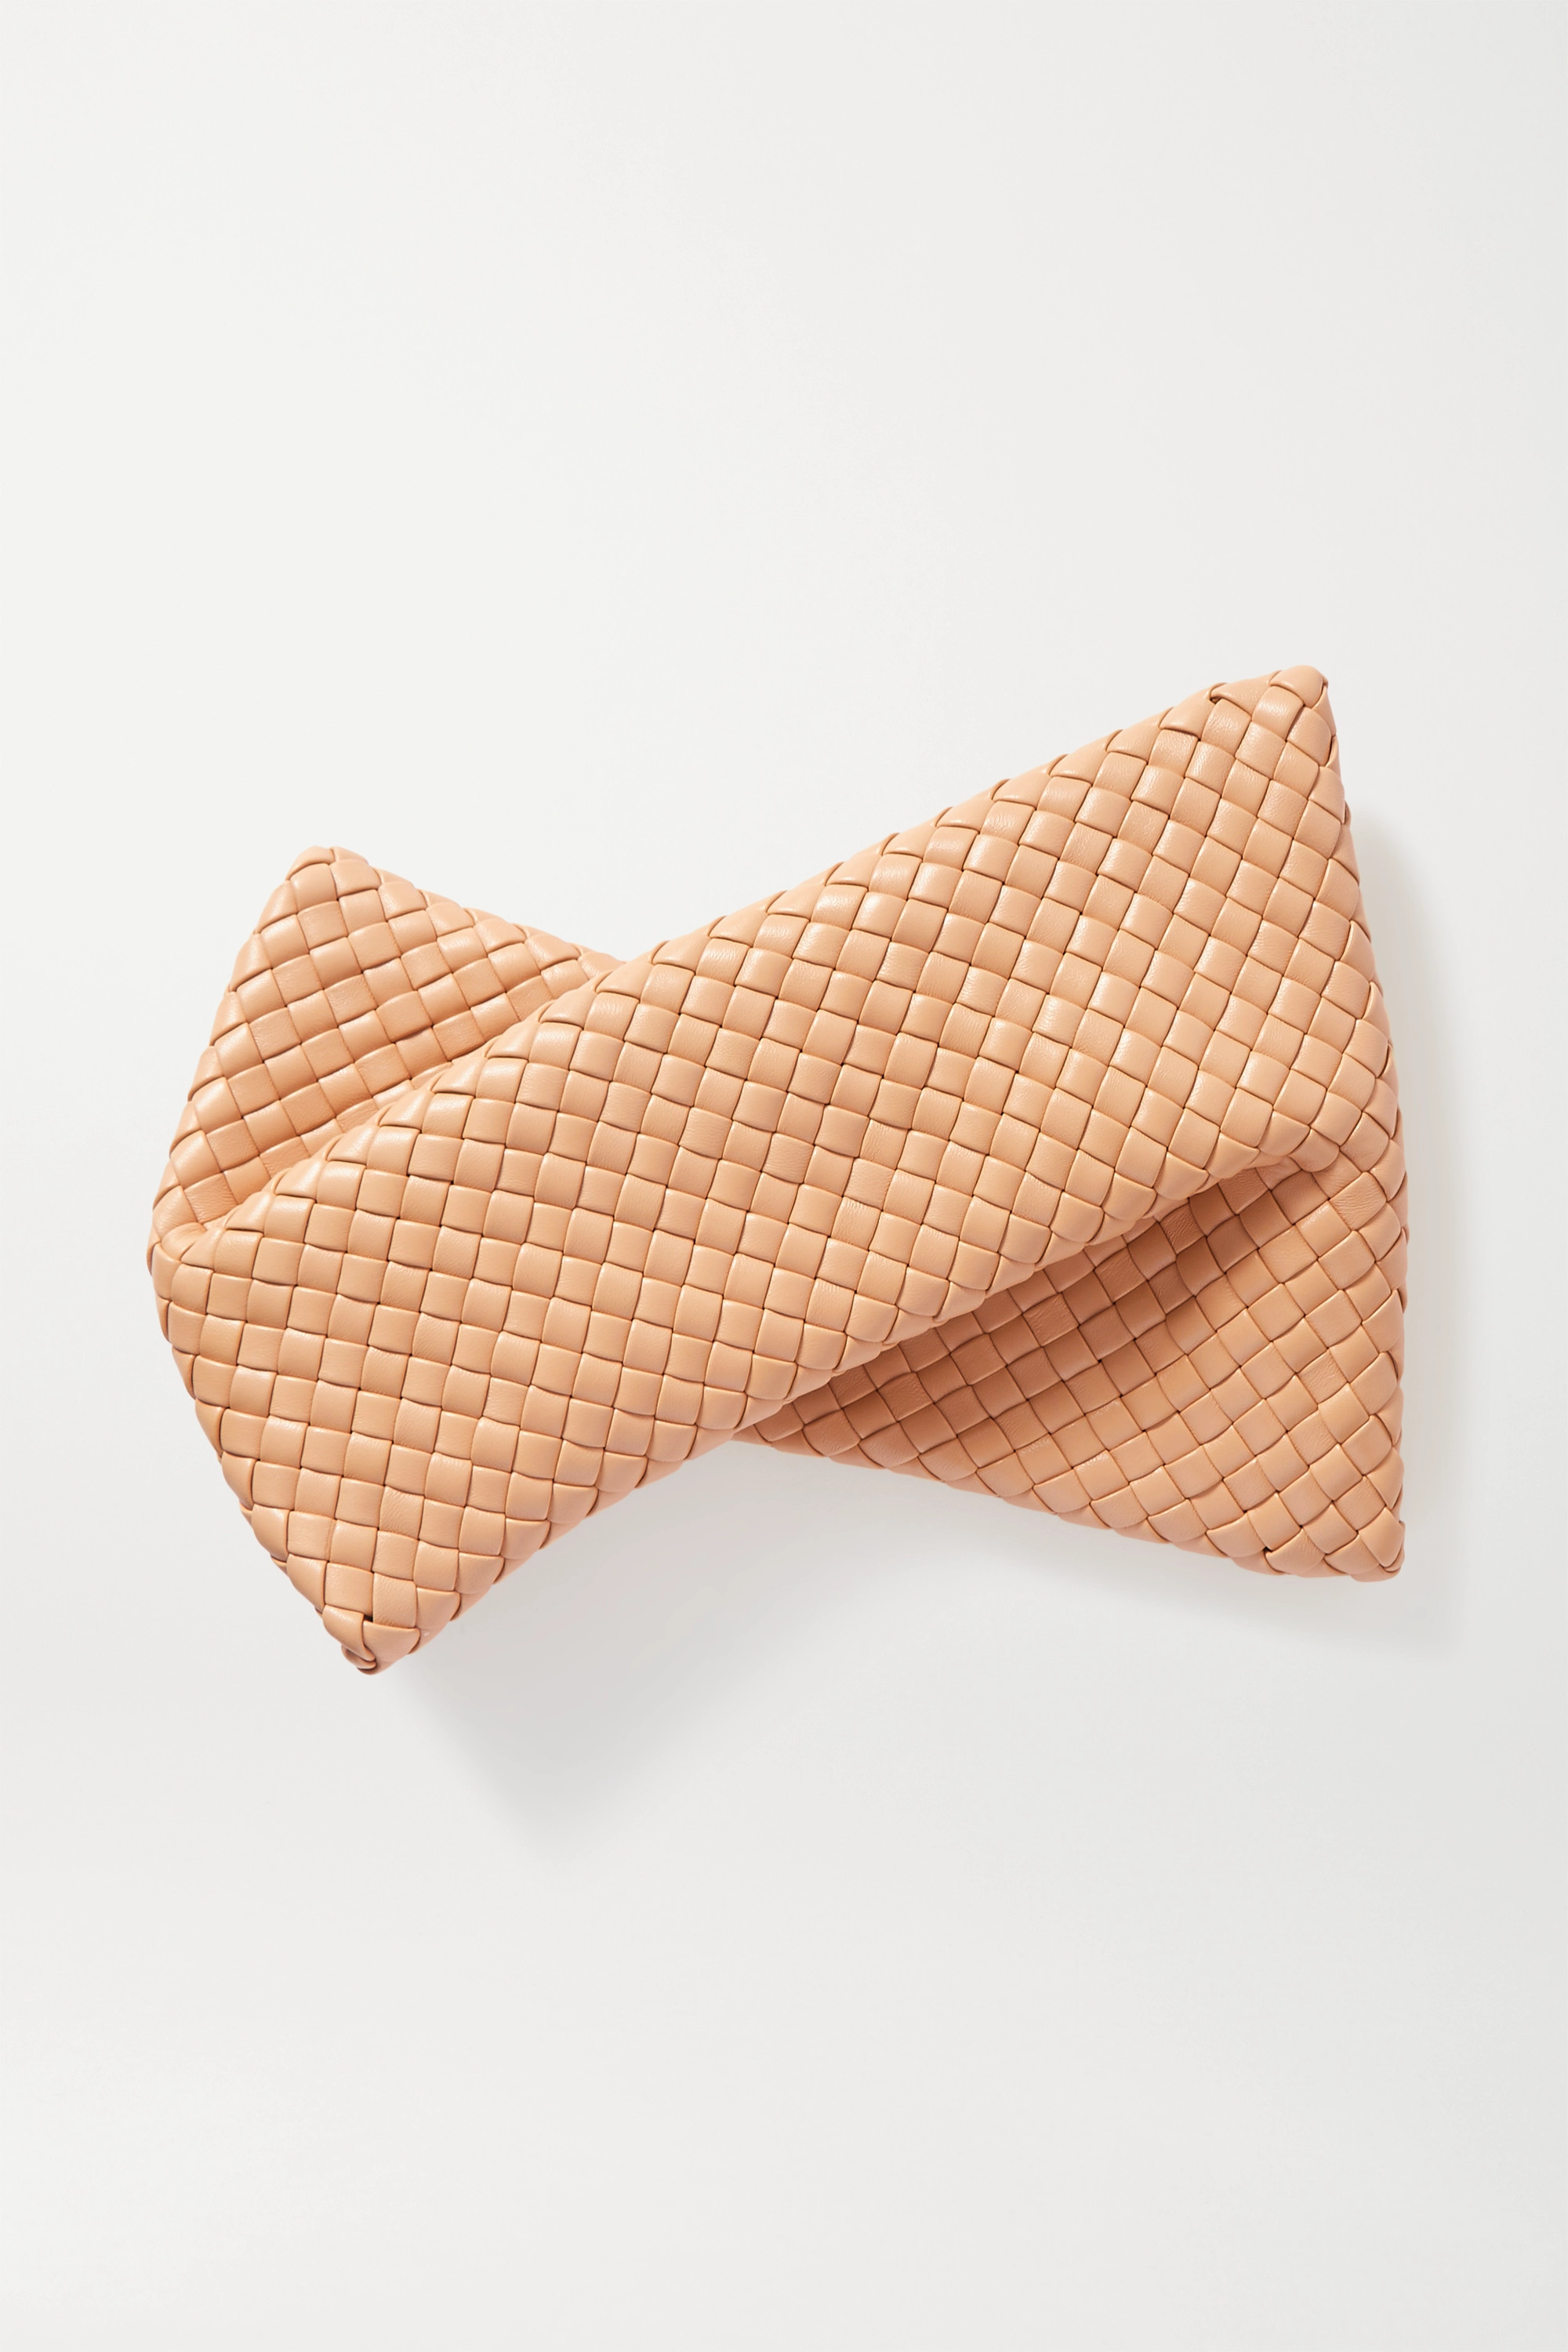 BOTTEGA VENETA The Crisscross intrecciato leather clutch